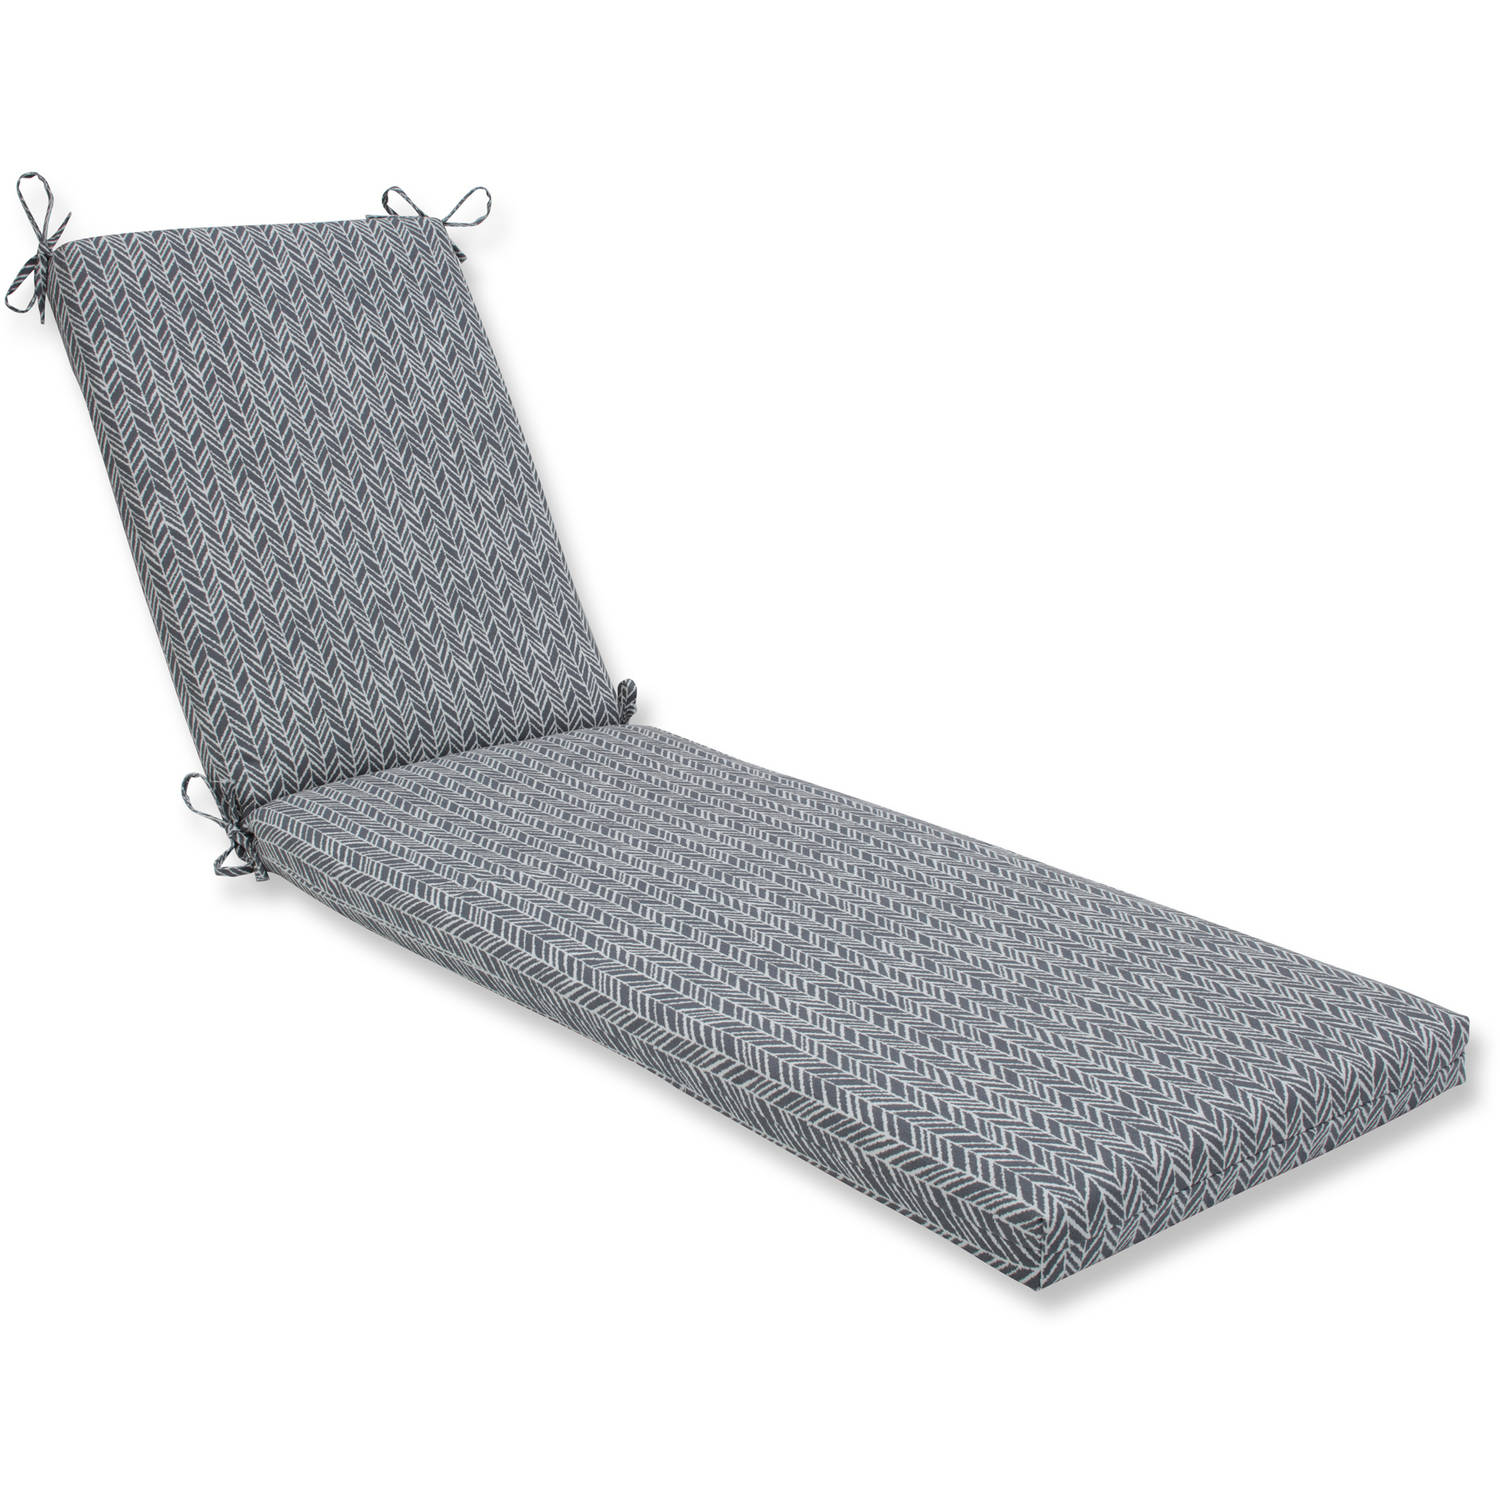 Pillow Perfect Outdoor/Indoor Herringbone Slate Chaise Lounge Cushion